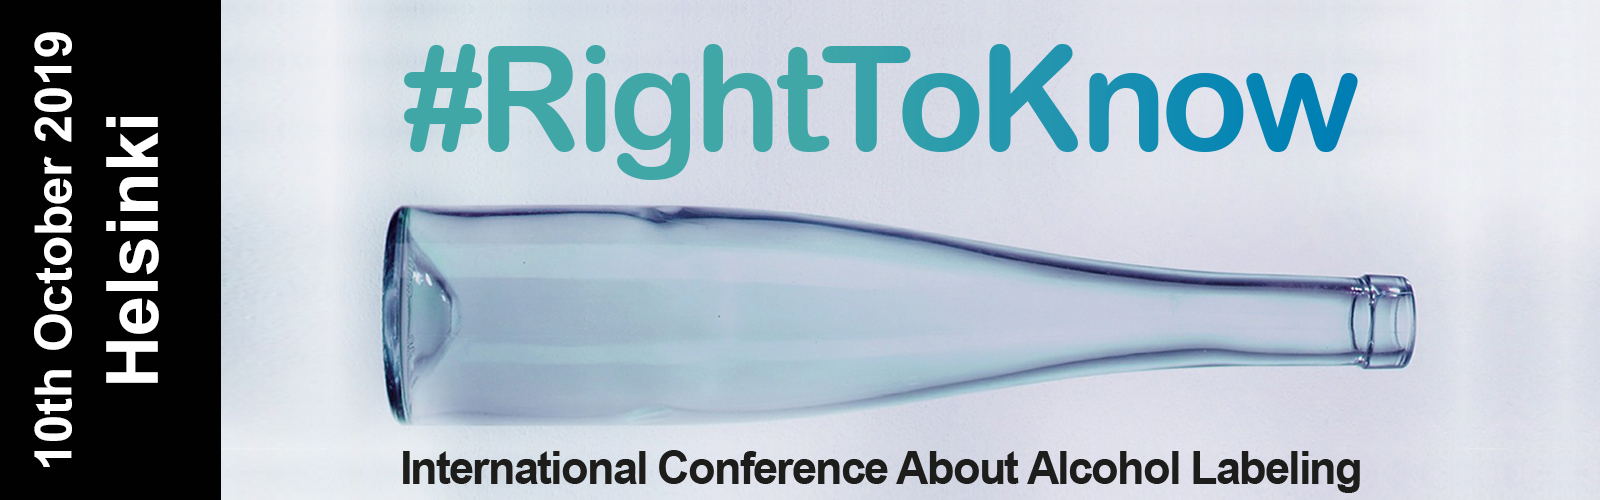 #RightToKnow International Conference About Alcohol Labeling.